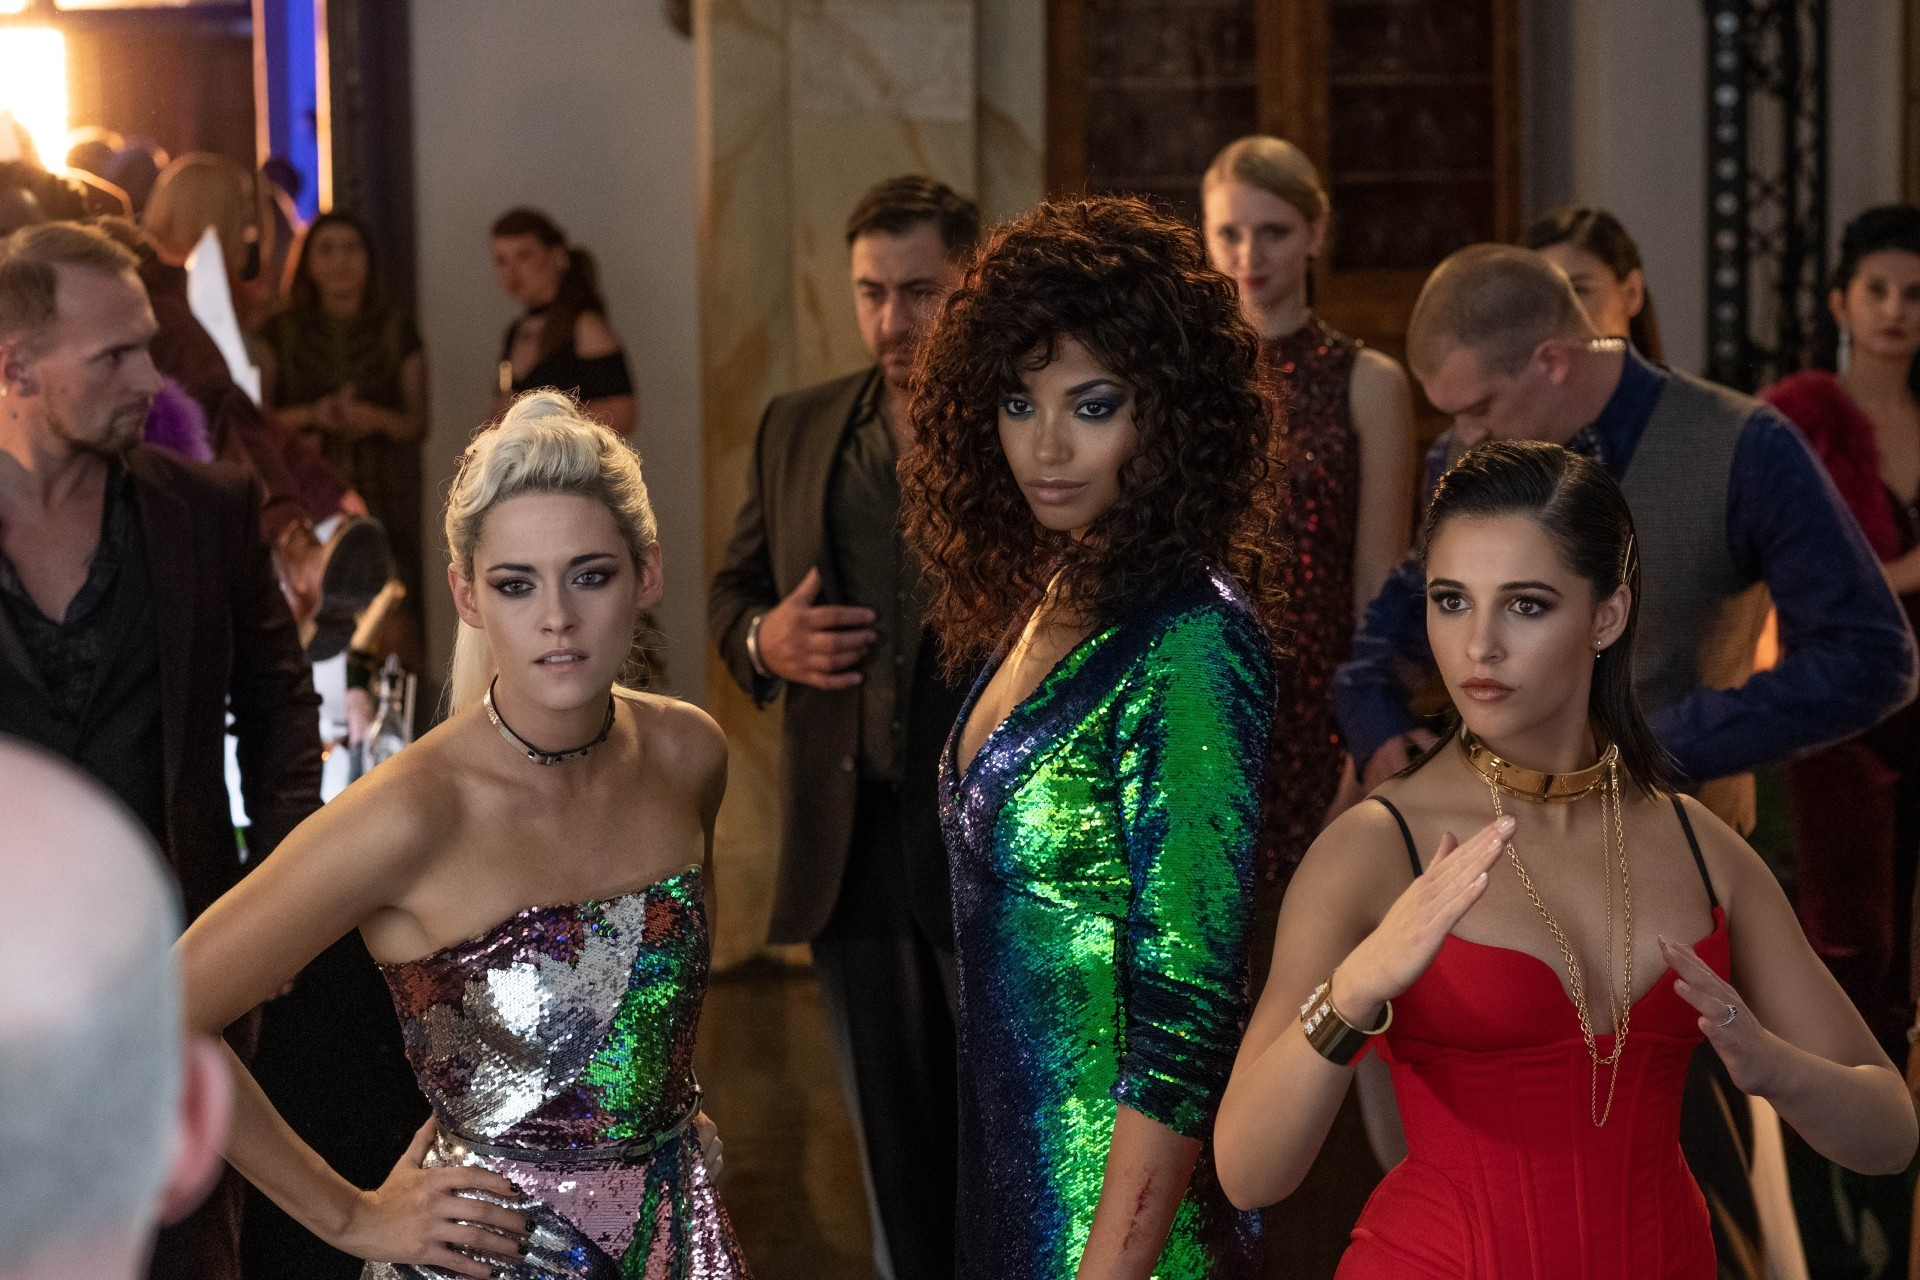 'And we're about to show you just how seriously the Barden Bellas take their oath.'